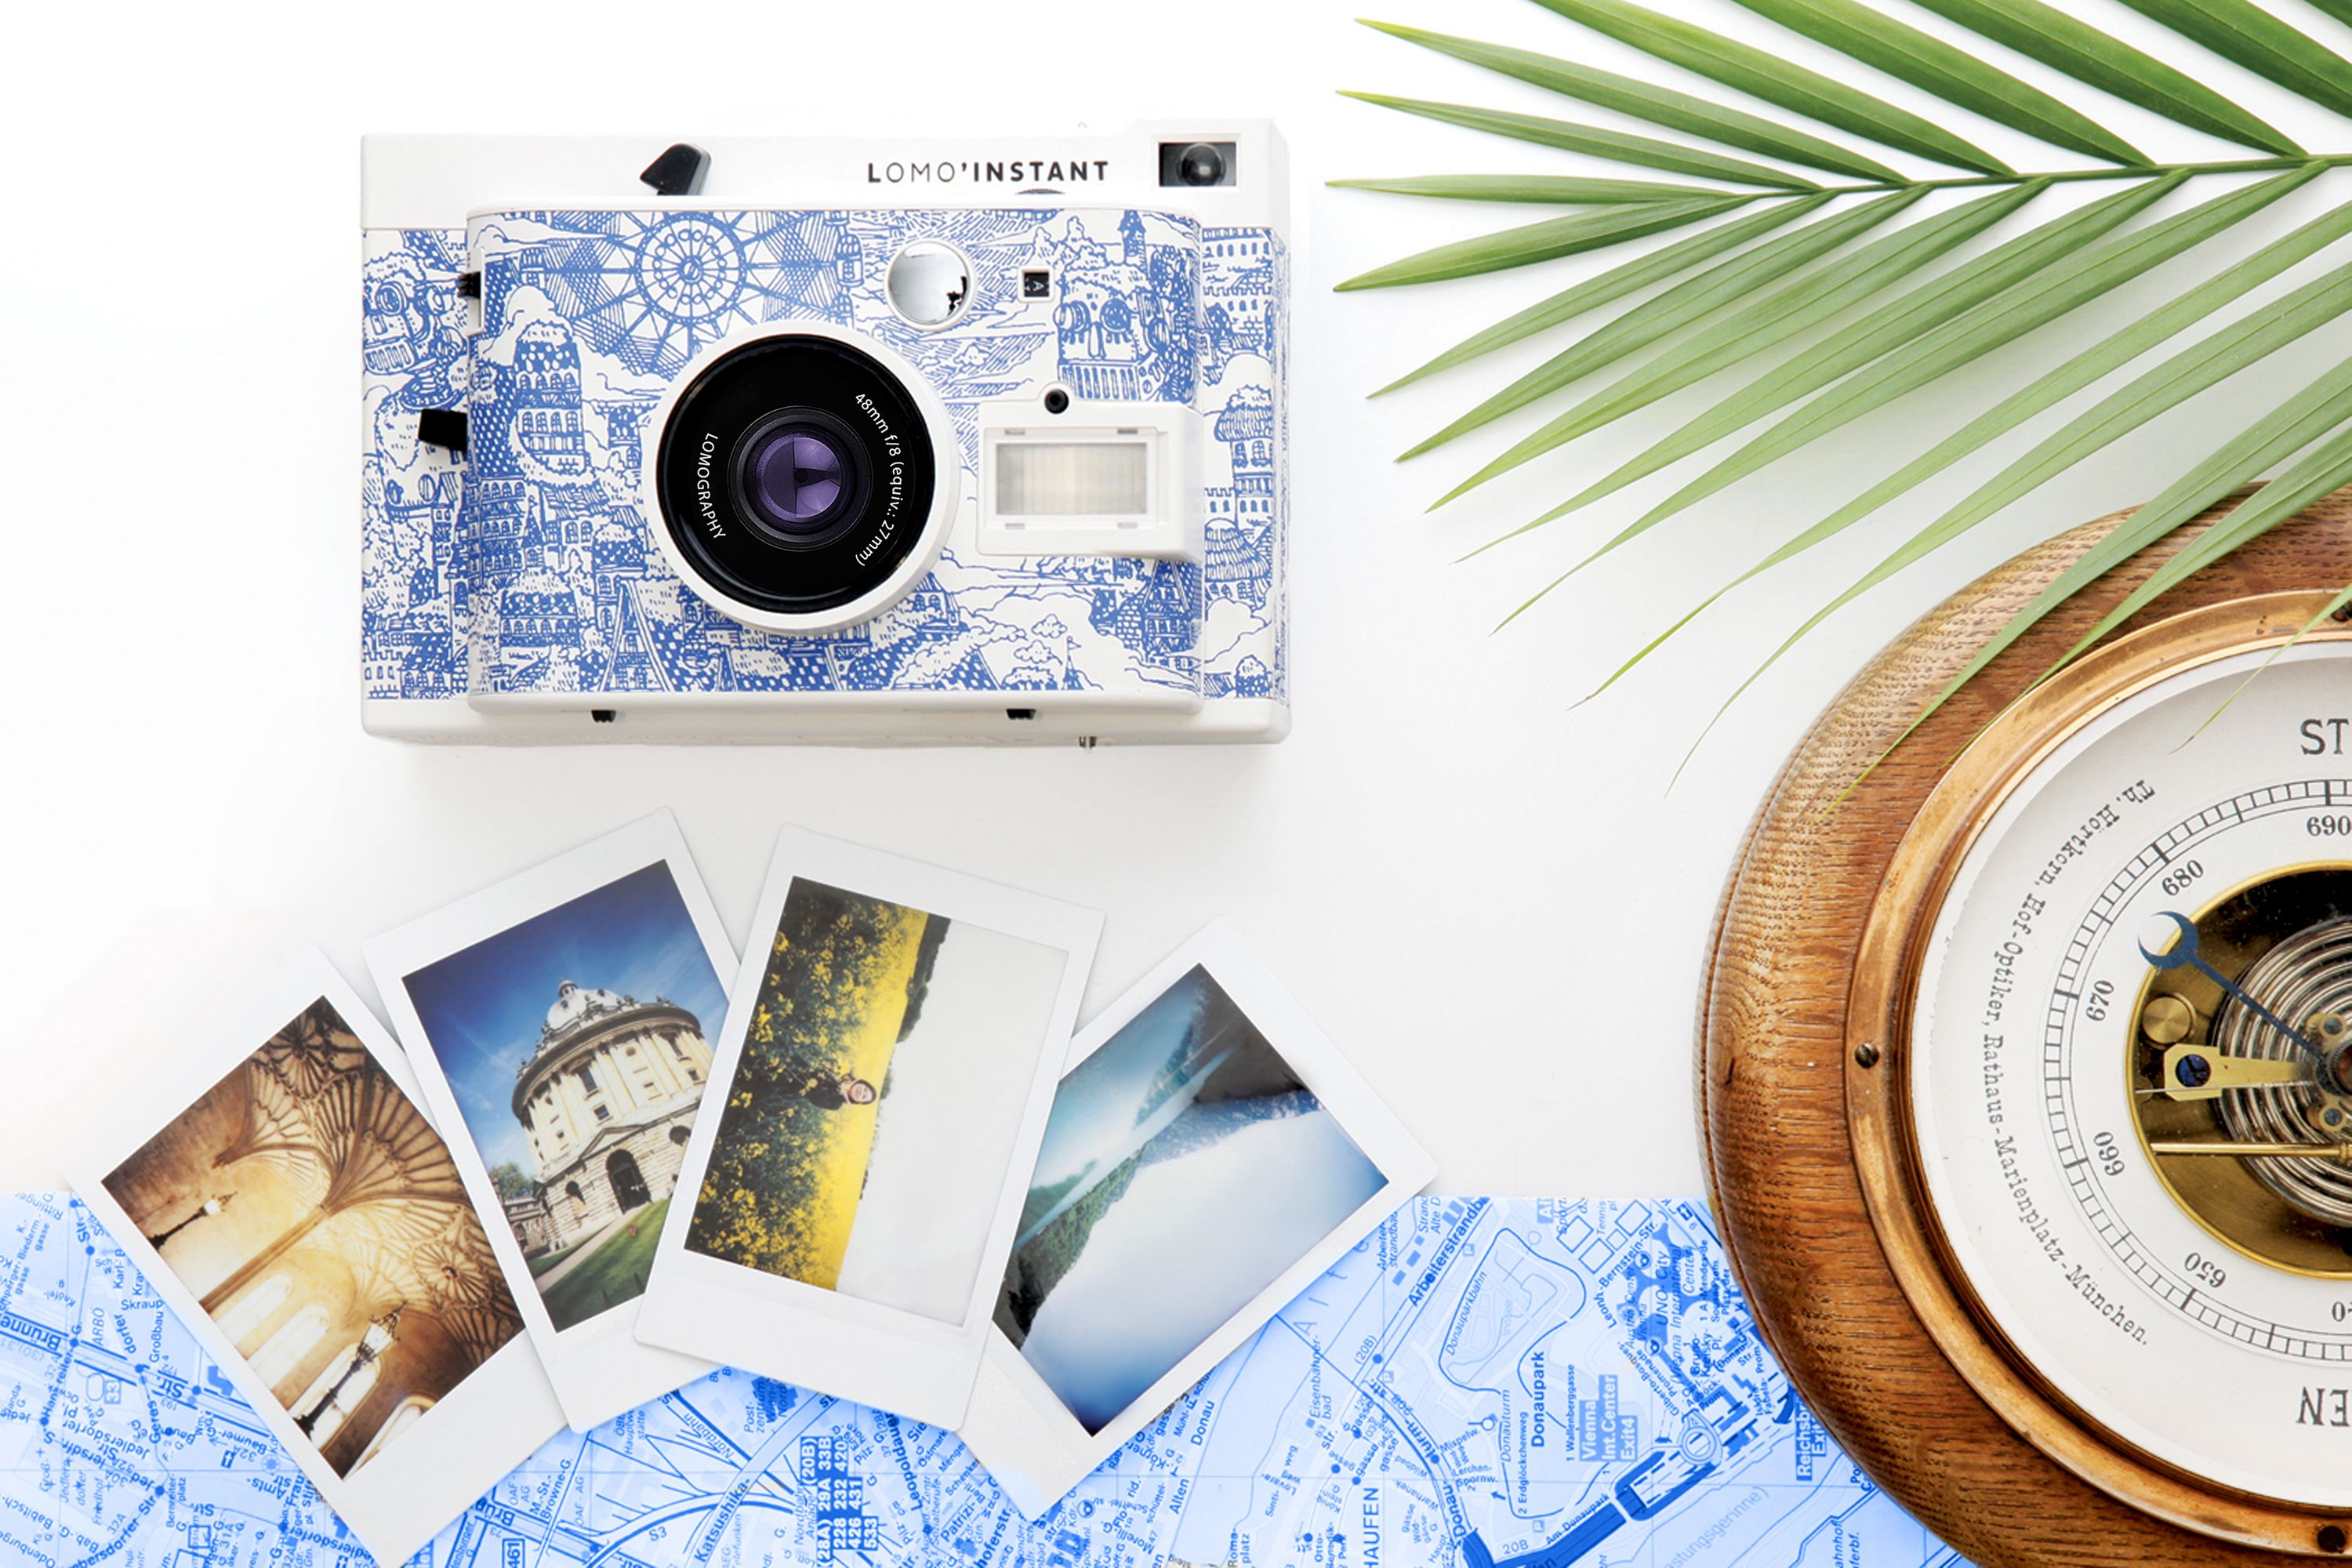 b329f40b6c91 Let your mind wander through wonderland with the new Lomo Instant Explorer